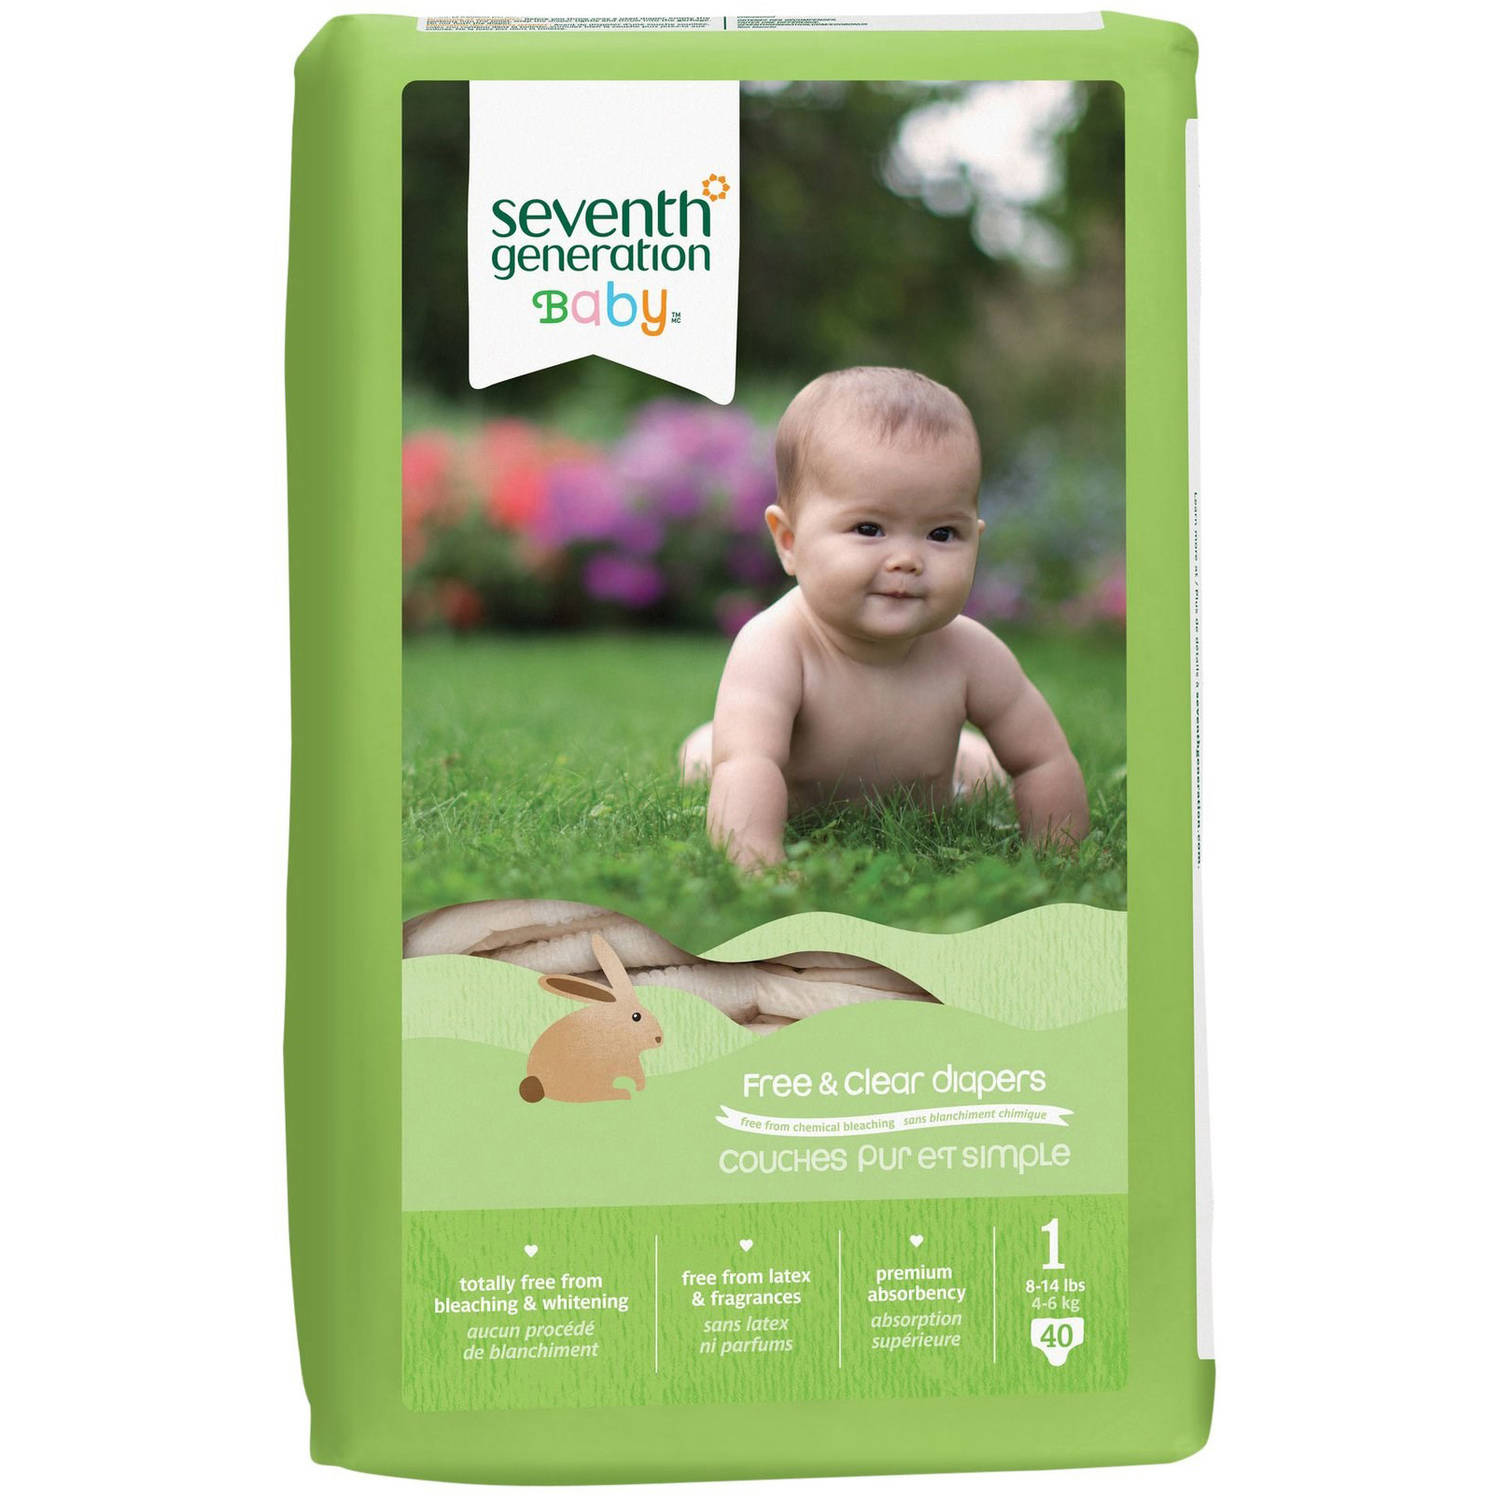 Seventh Generation Baby Free & Clear Diapers, Size 1, 160 Diapers (4 Packs of 40)